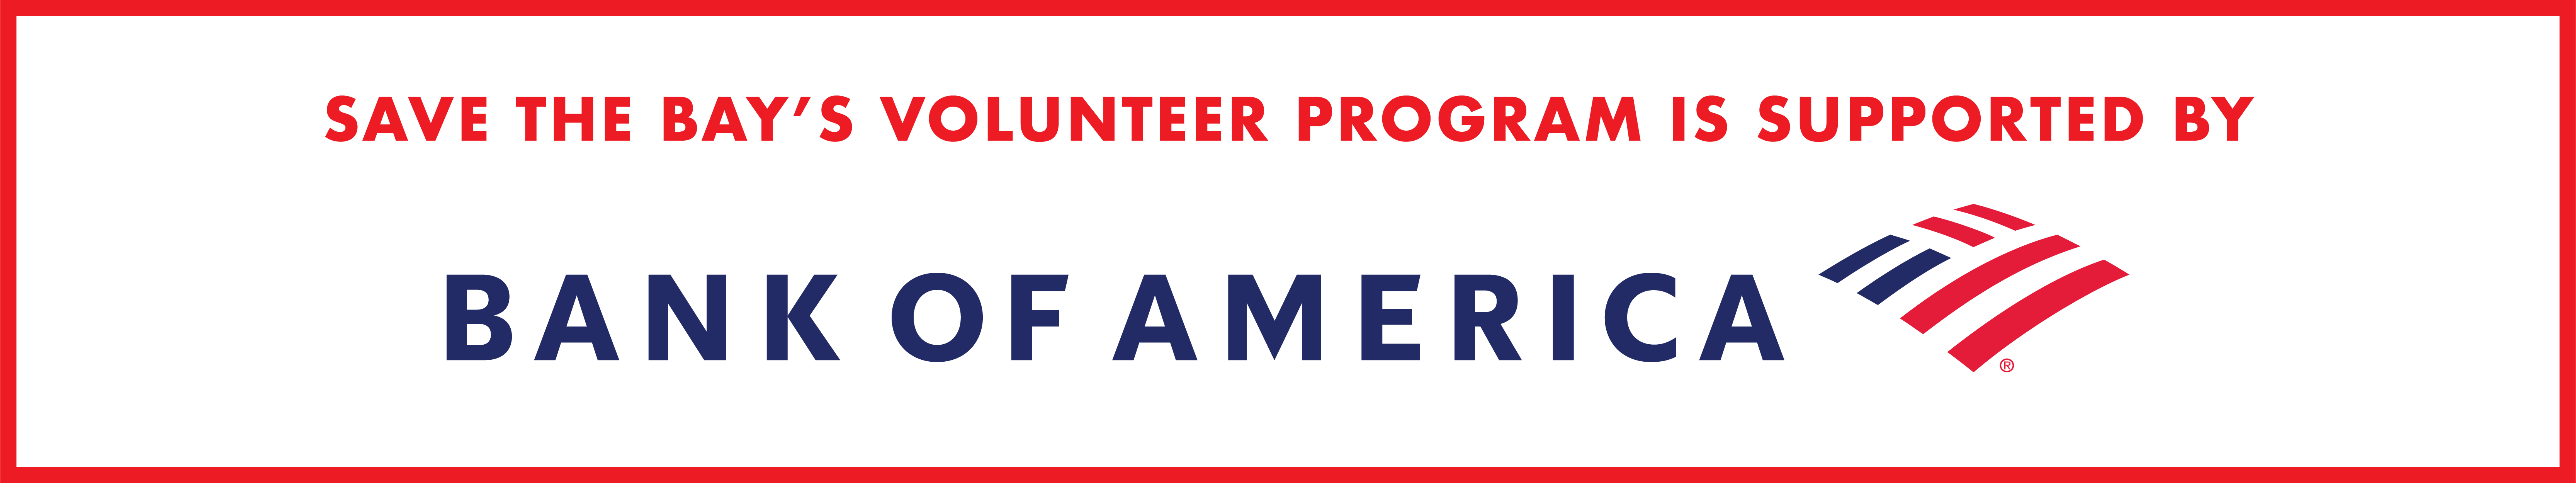 Save The Bay's volunteer program is supported by Bank of America